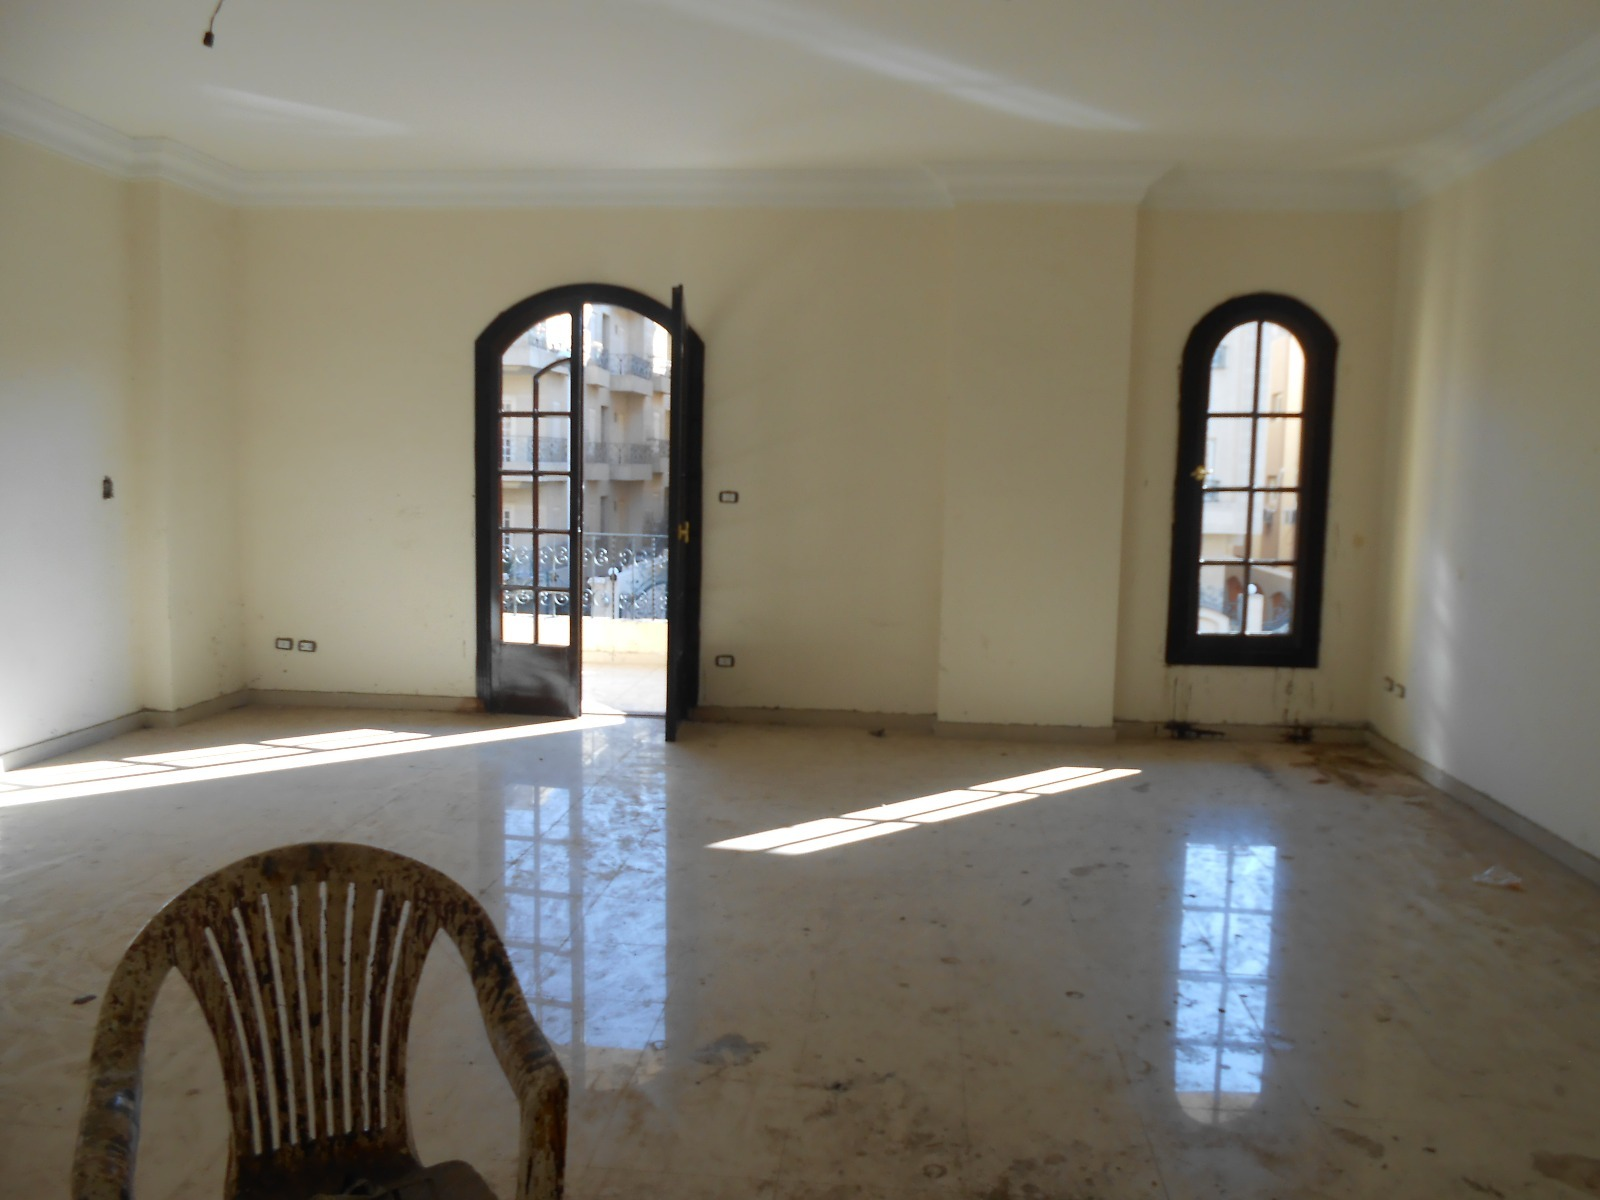 For Rent Apartment 150m villas First Quarter Fifth district New Cairo